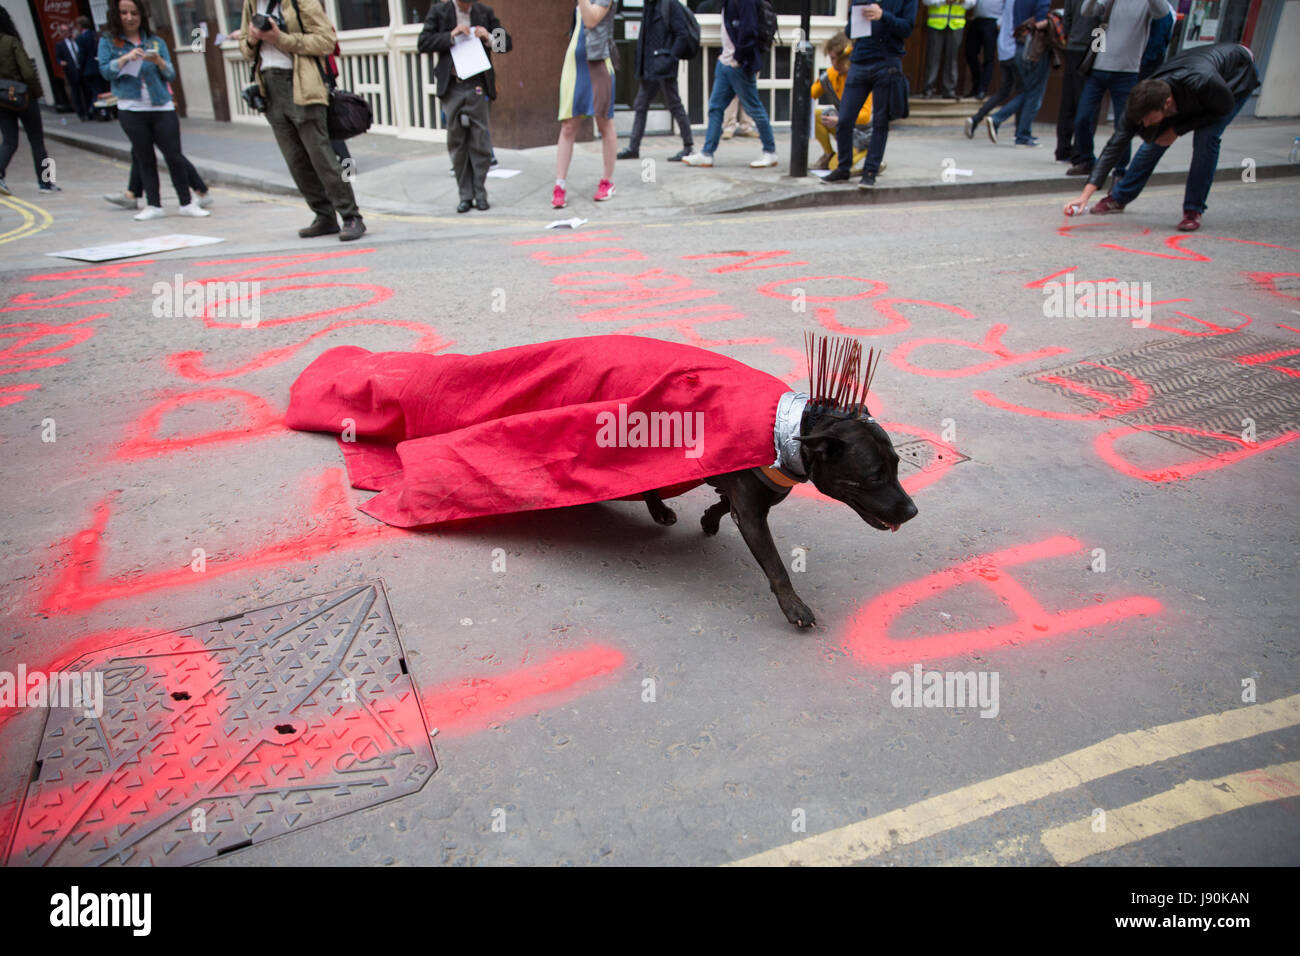 London, UK. 30th May, 2017. A dog belonging to an activist from Life Not Money crosses a road painted by activists - Stock Image